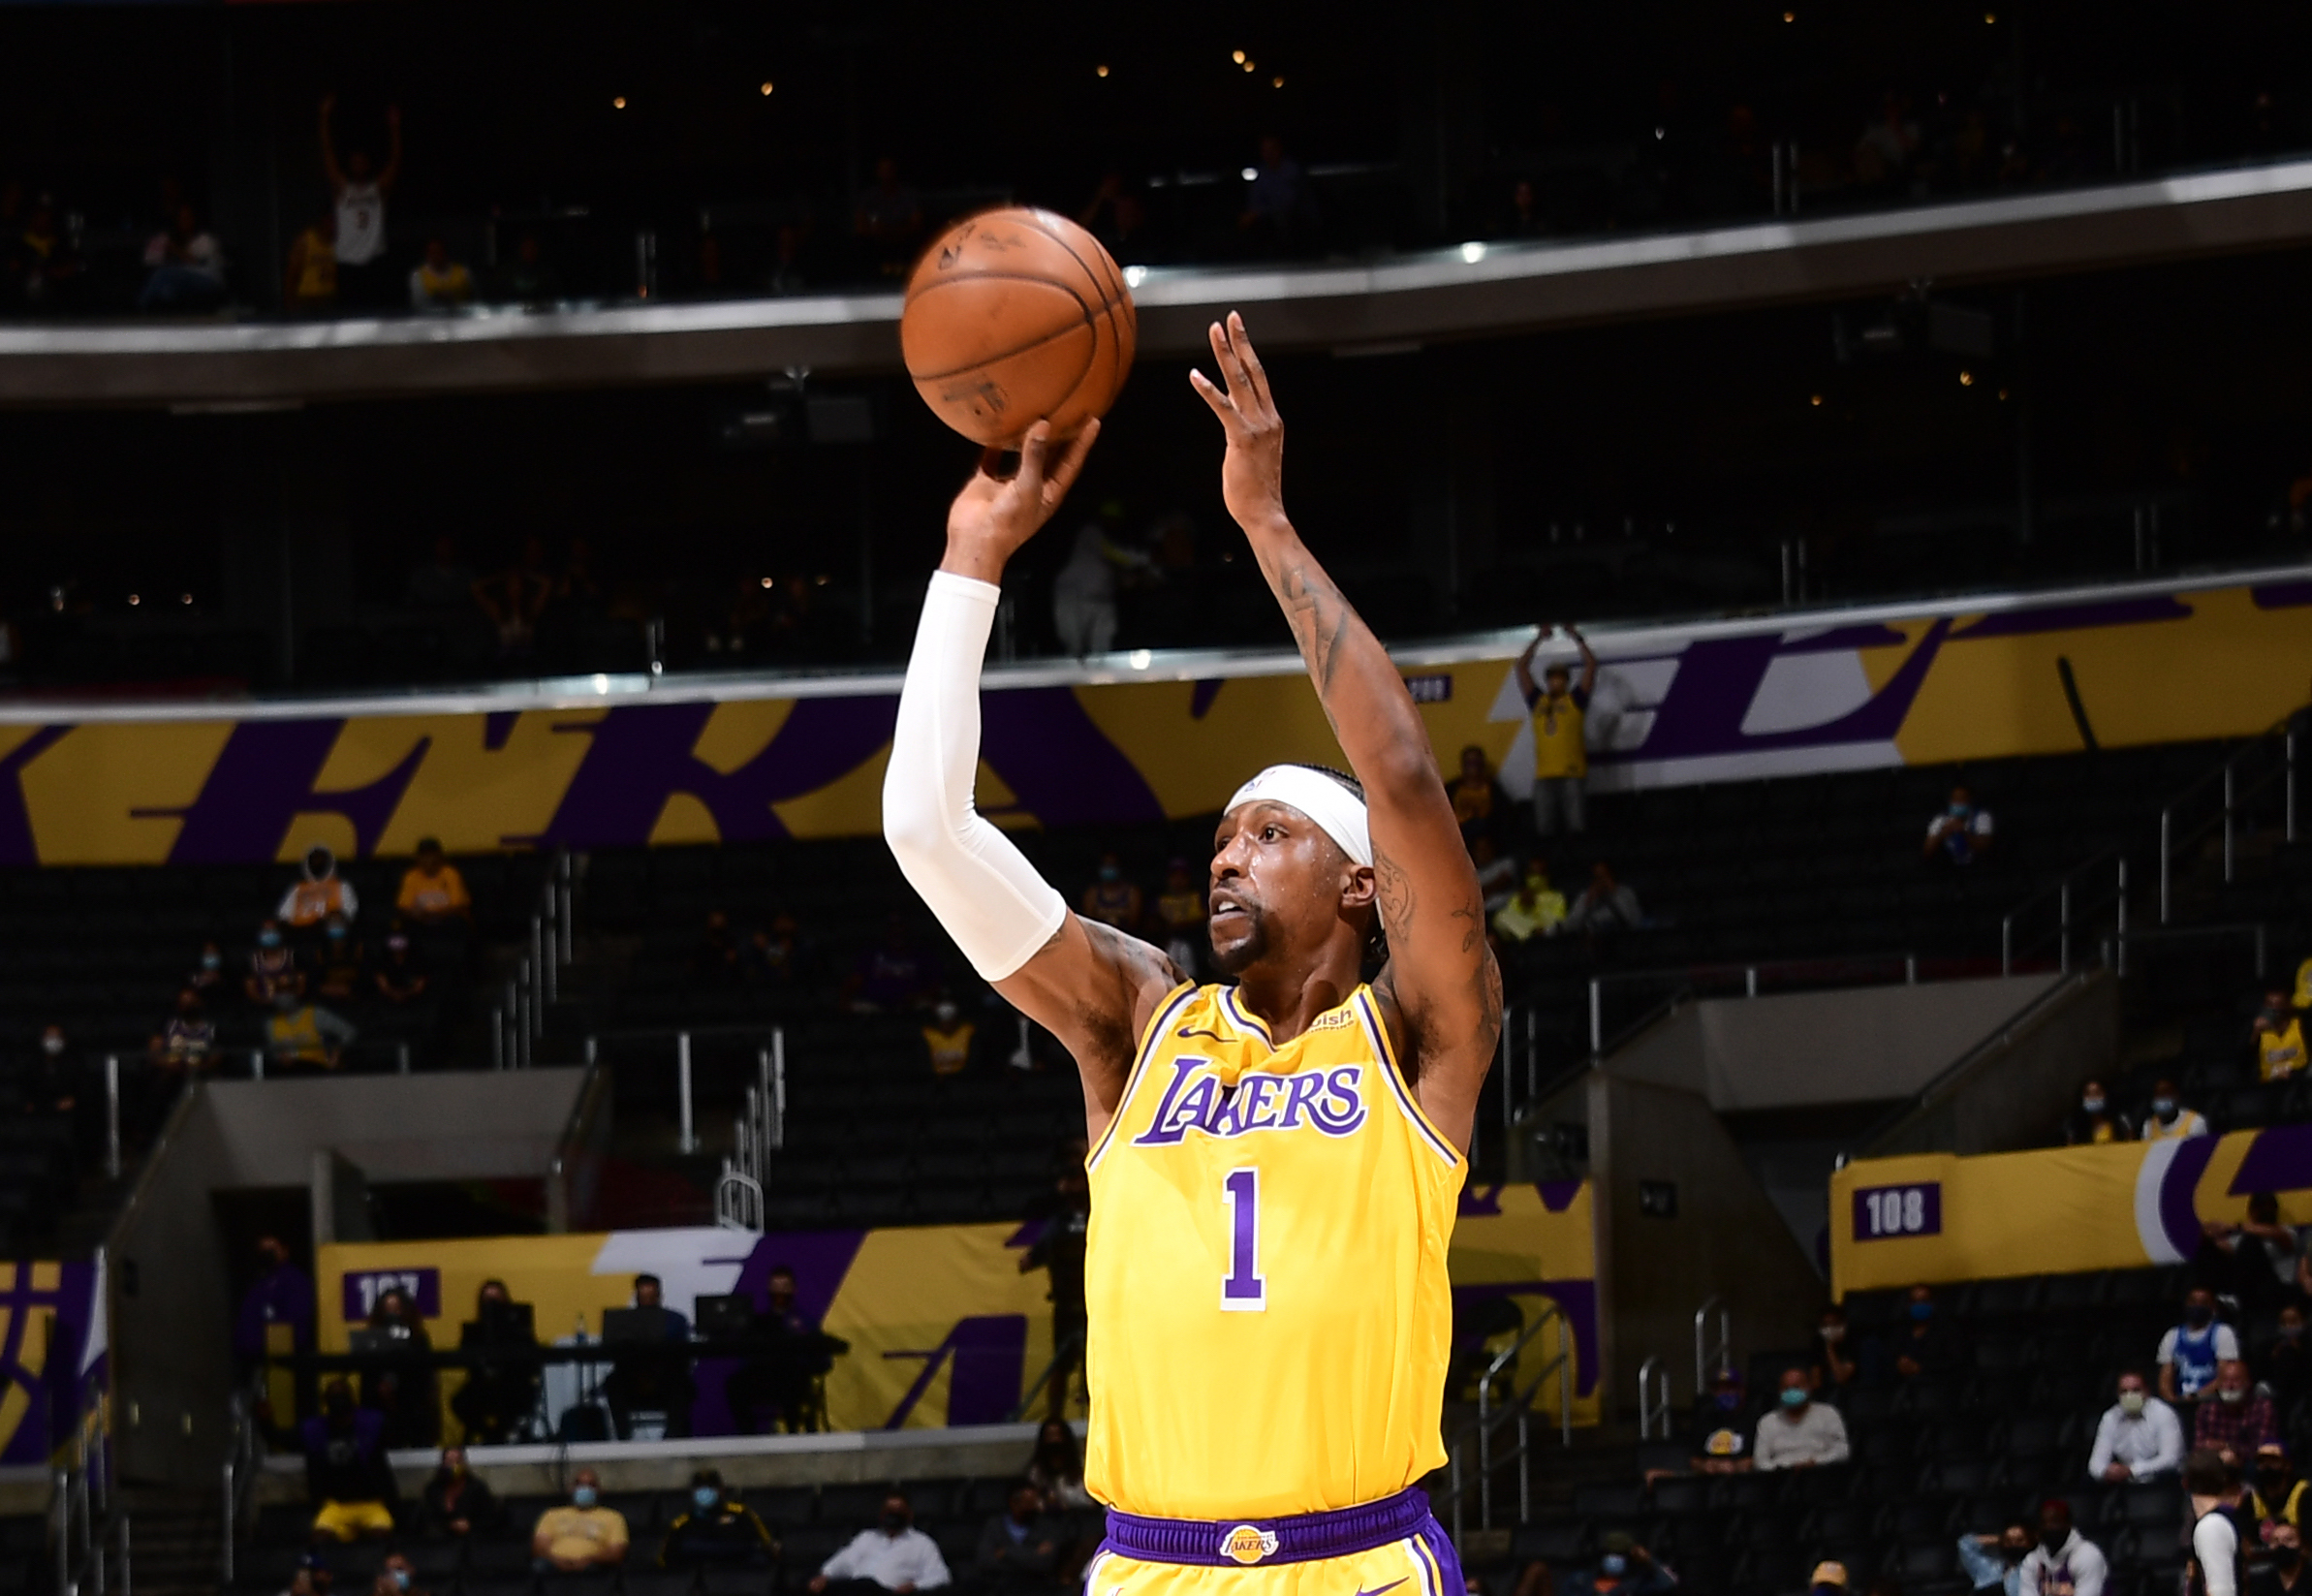 Lakers' Caldwell-Pope has knee bruise, no structural damage